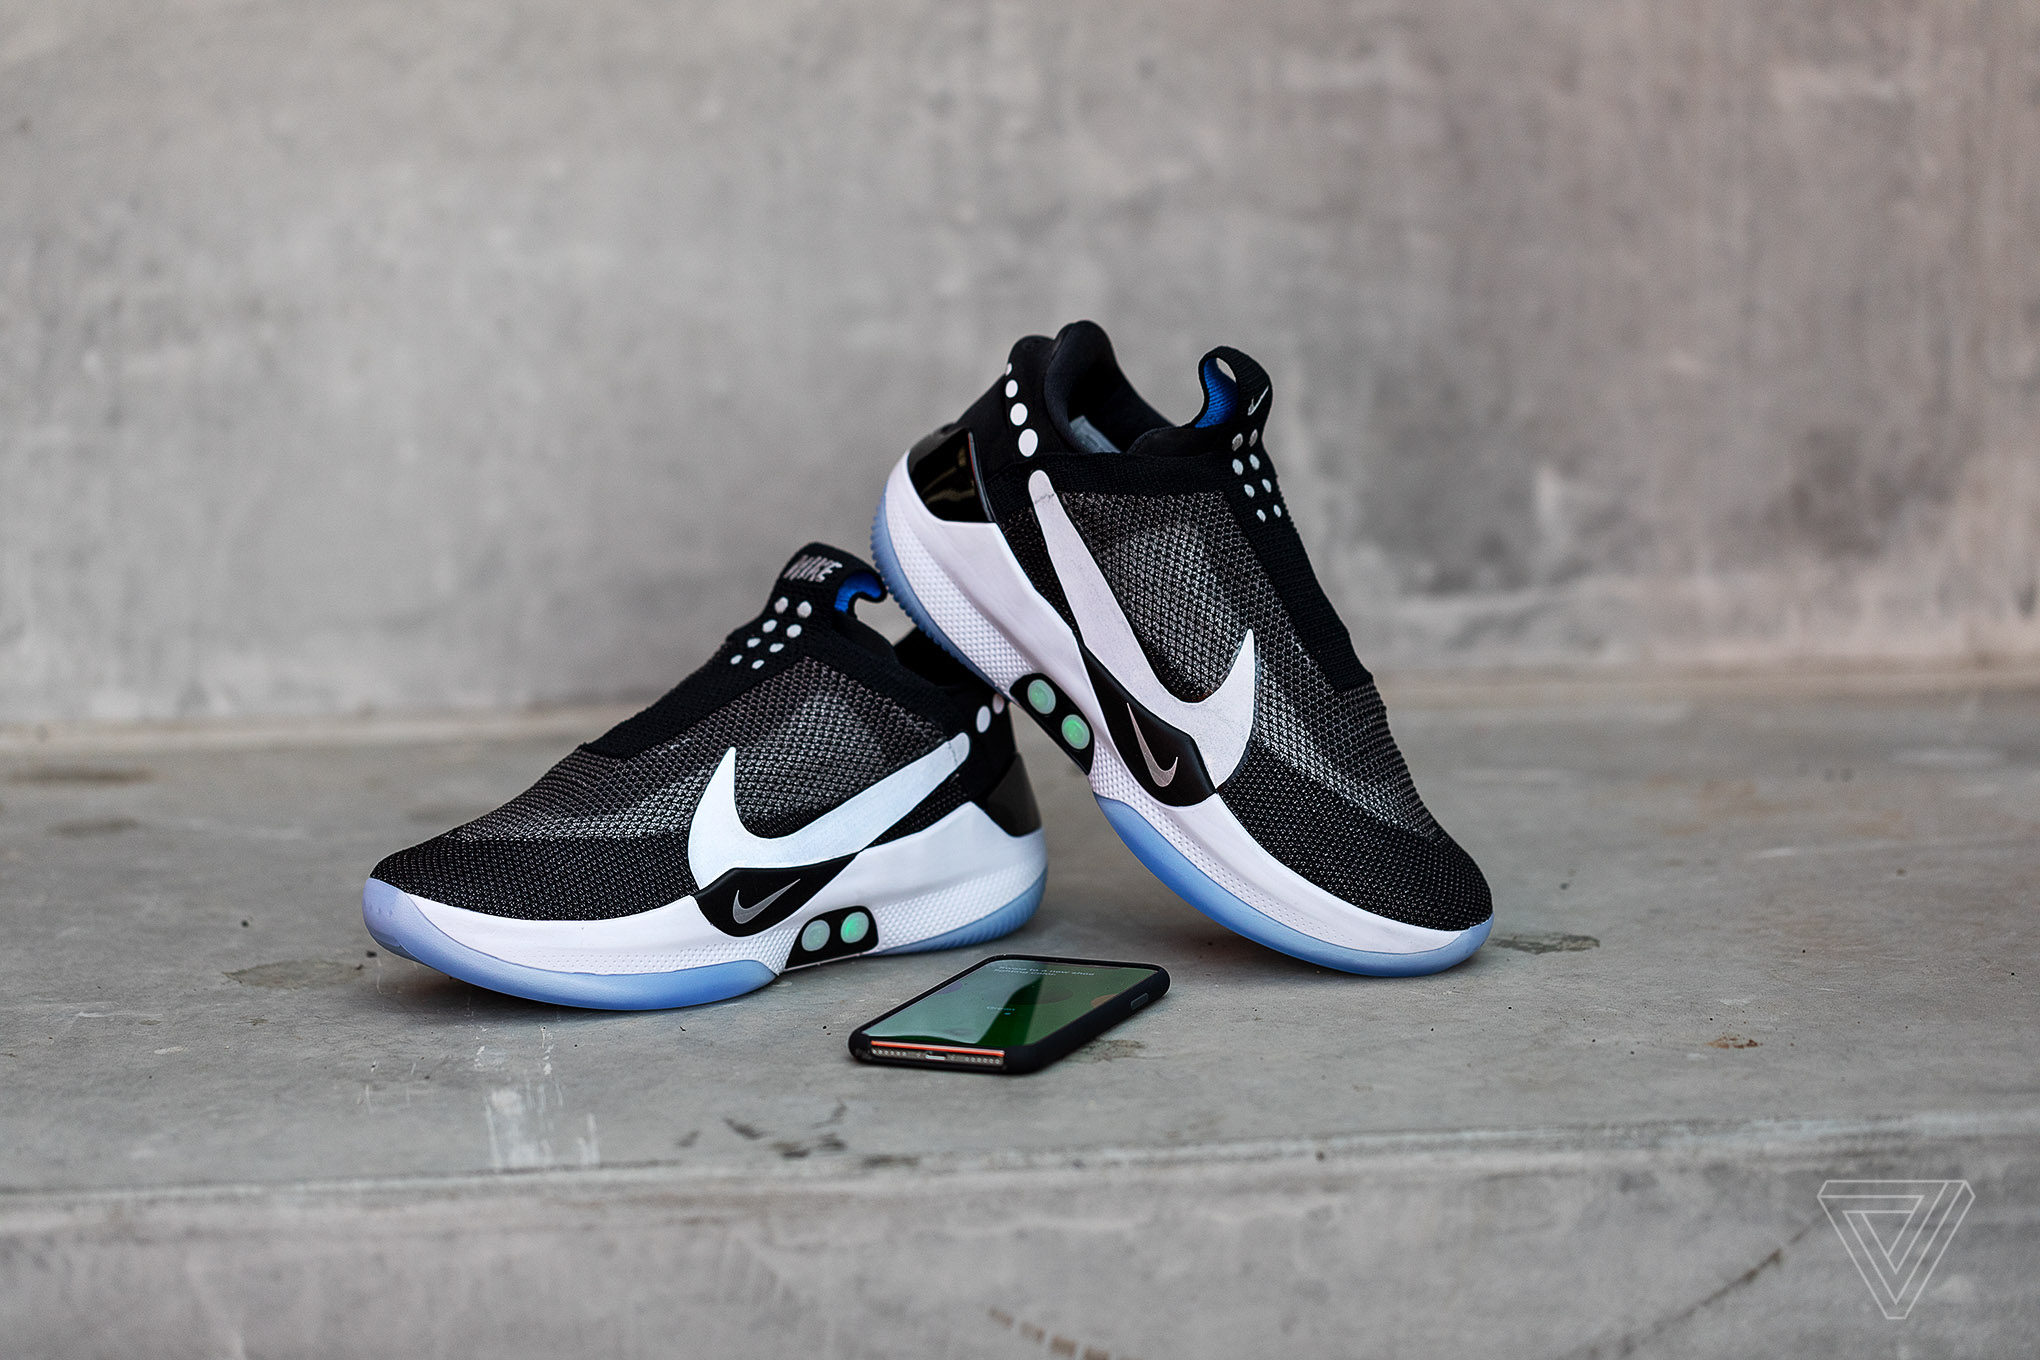 03380448a Nike s Adapt BB self-lacing sneakers let you tie your shoes from an ...